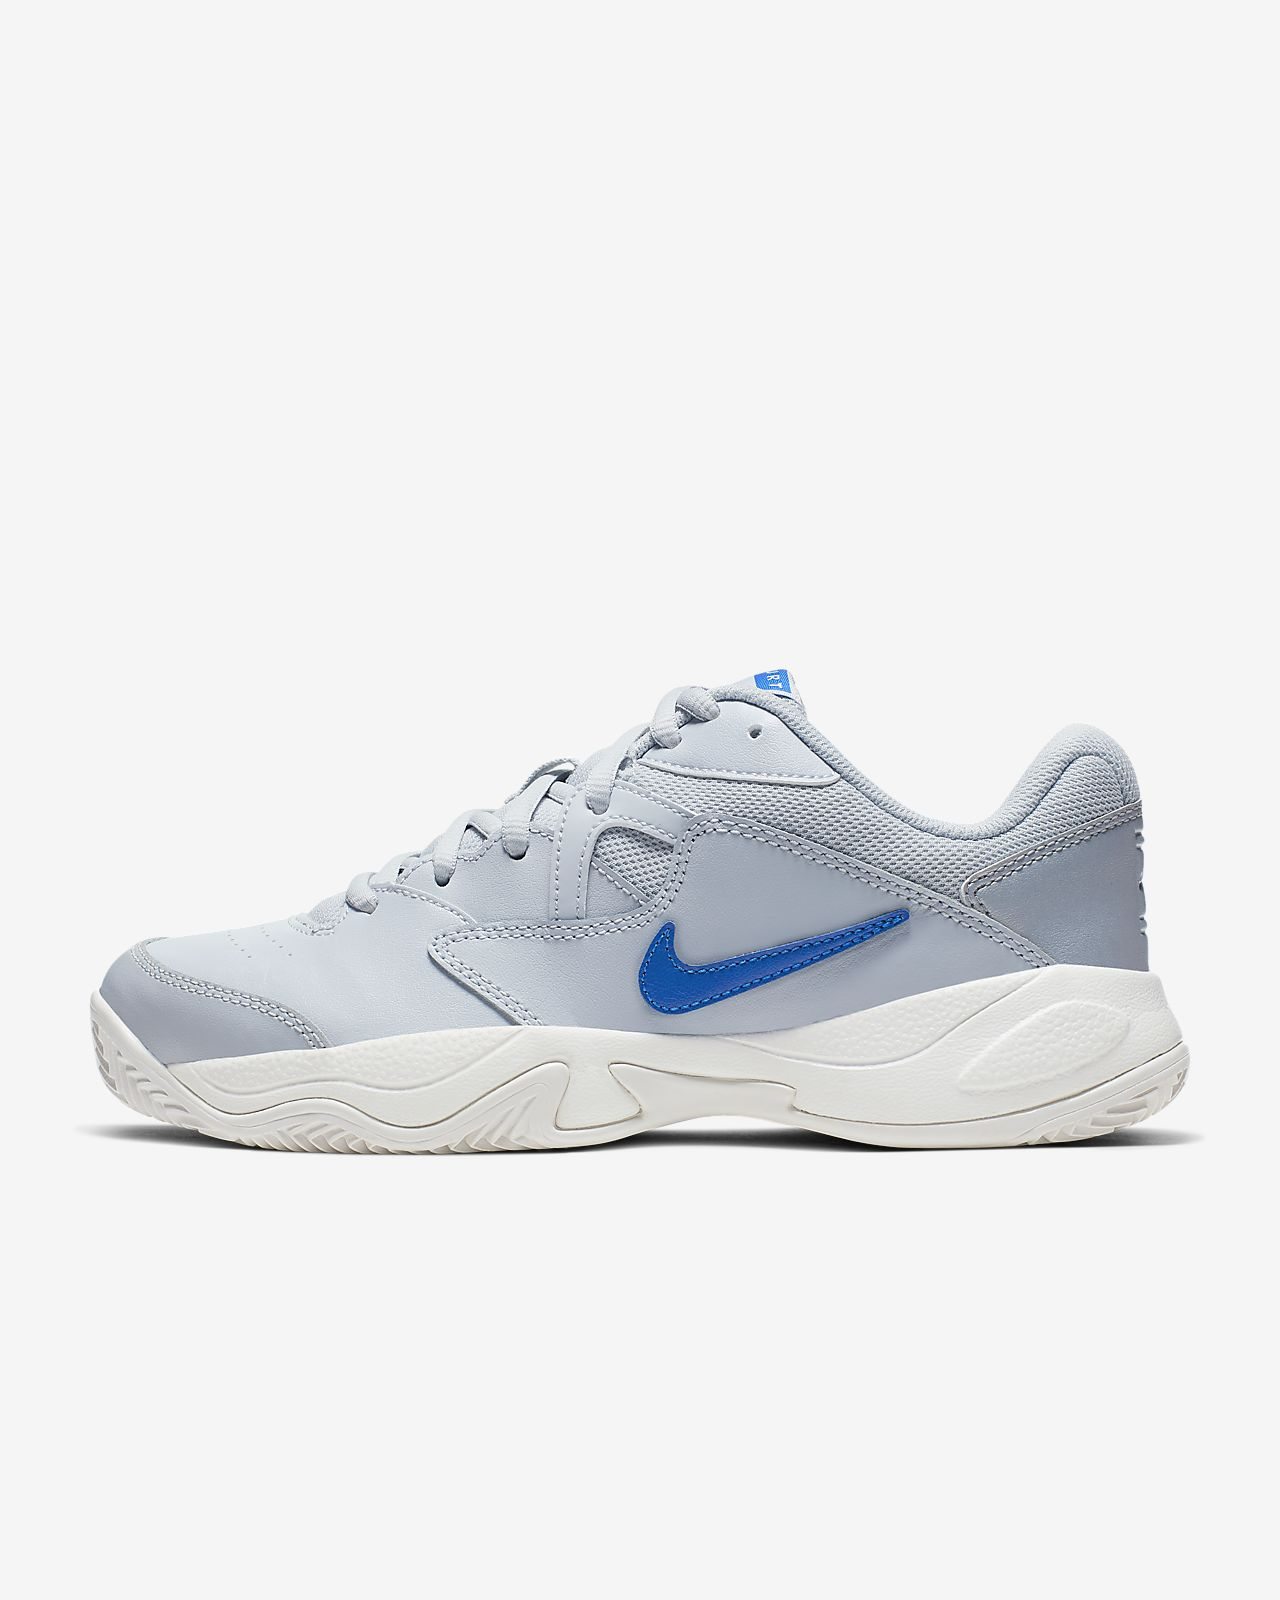 NikeCourt Lite 2 Women's Clay Tennis Shoe